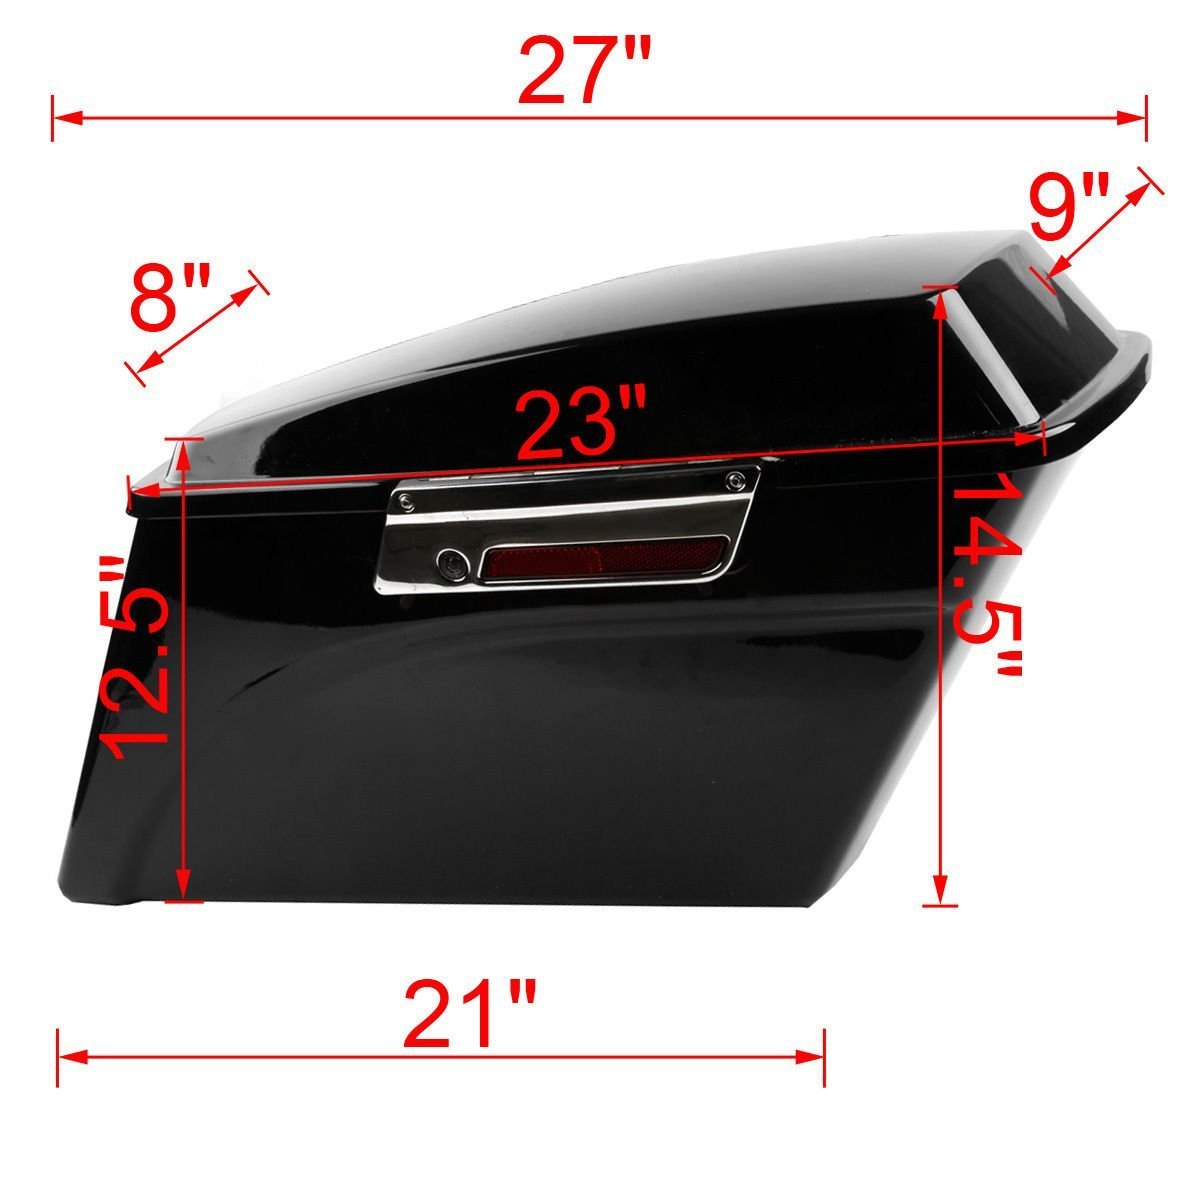 XFMT Gloss Black Hard Saddle bags Trunk w/Lid Latch & Key+Saddlebag Conversion Brackets Mounts Compatible with Harley Davidson Softail 1994-2013 by XFMT (Image #3)